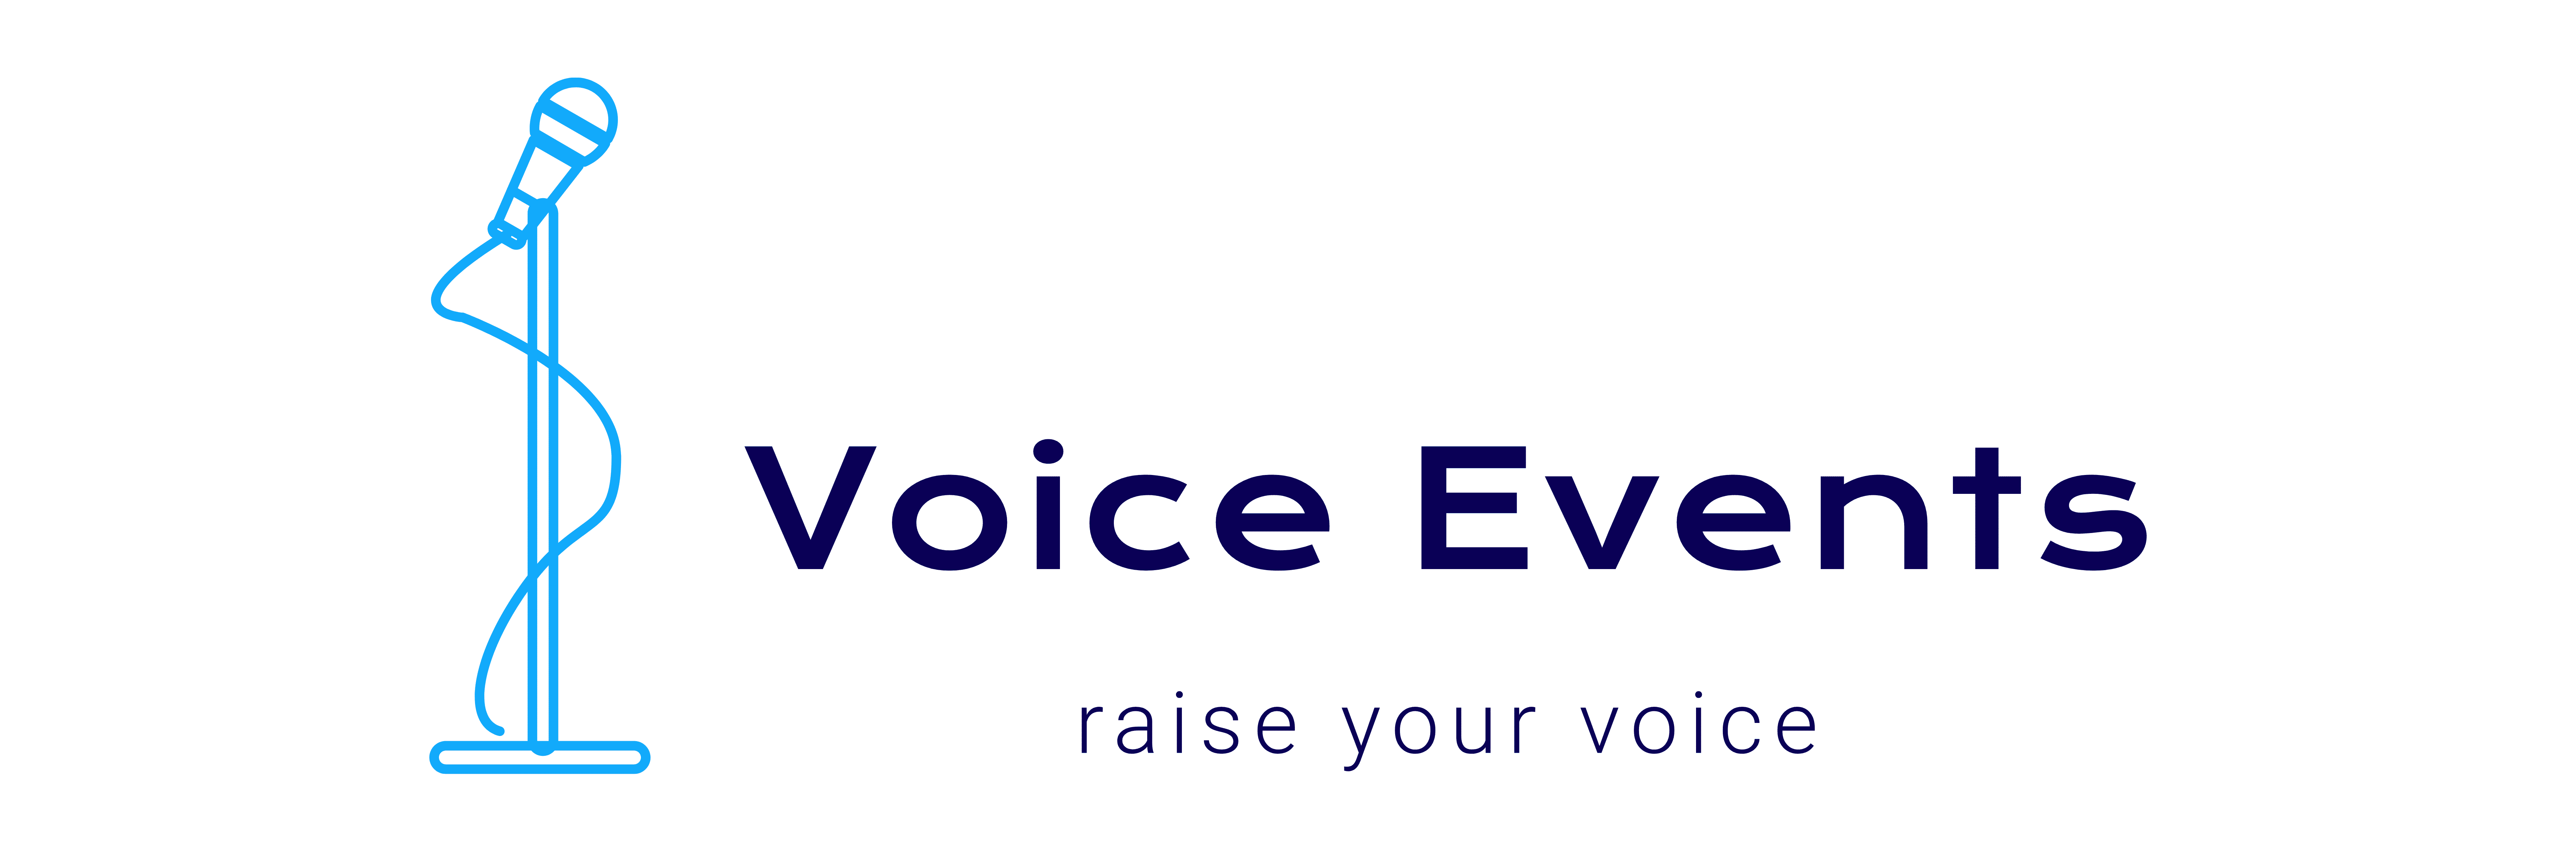 VOICE EVENTS